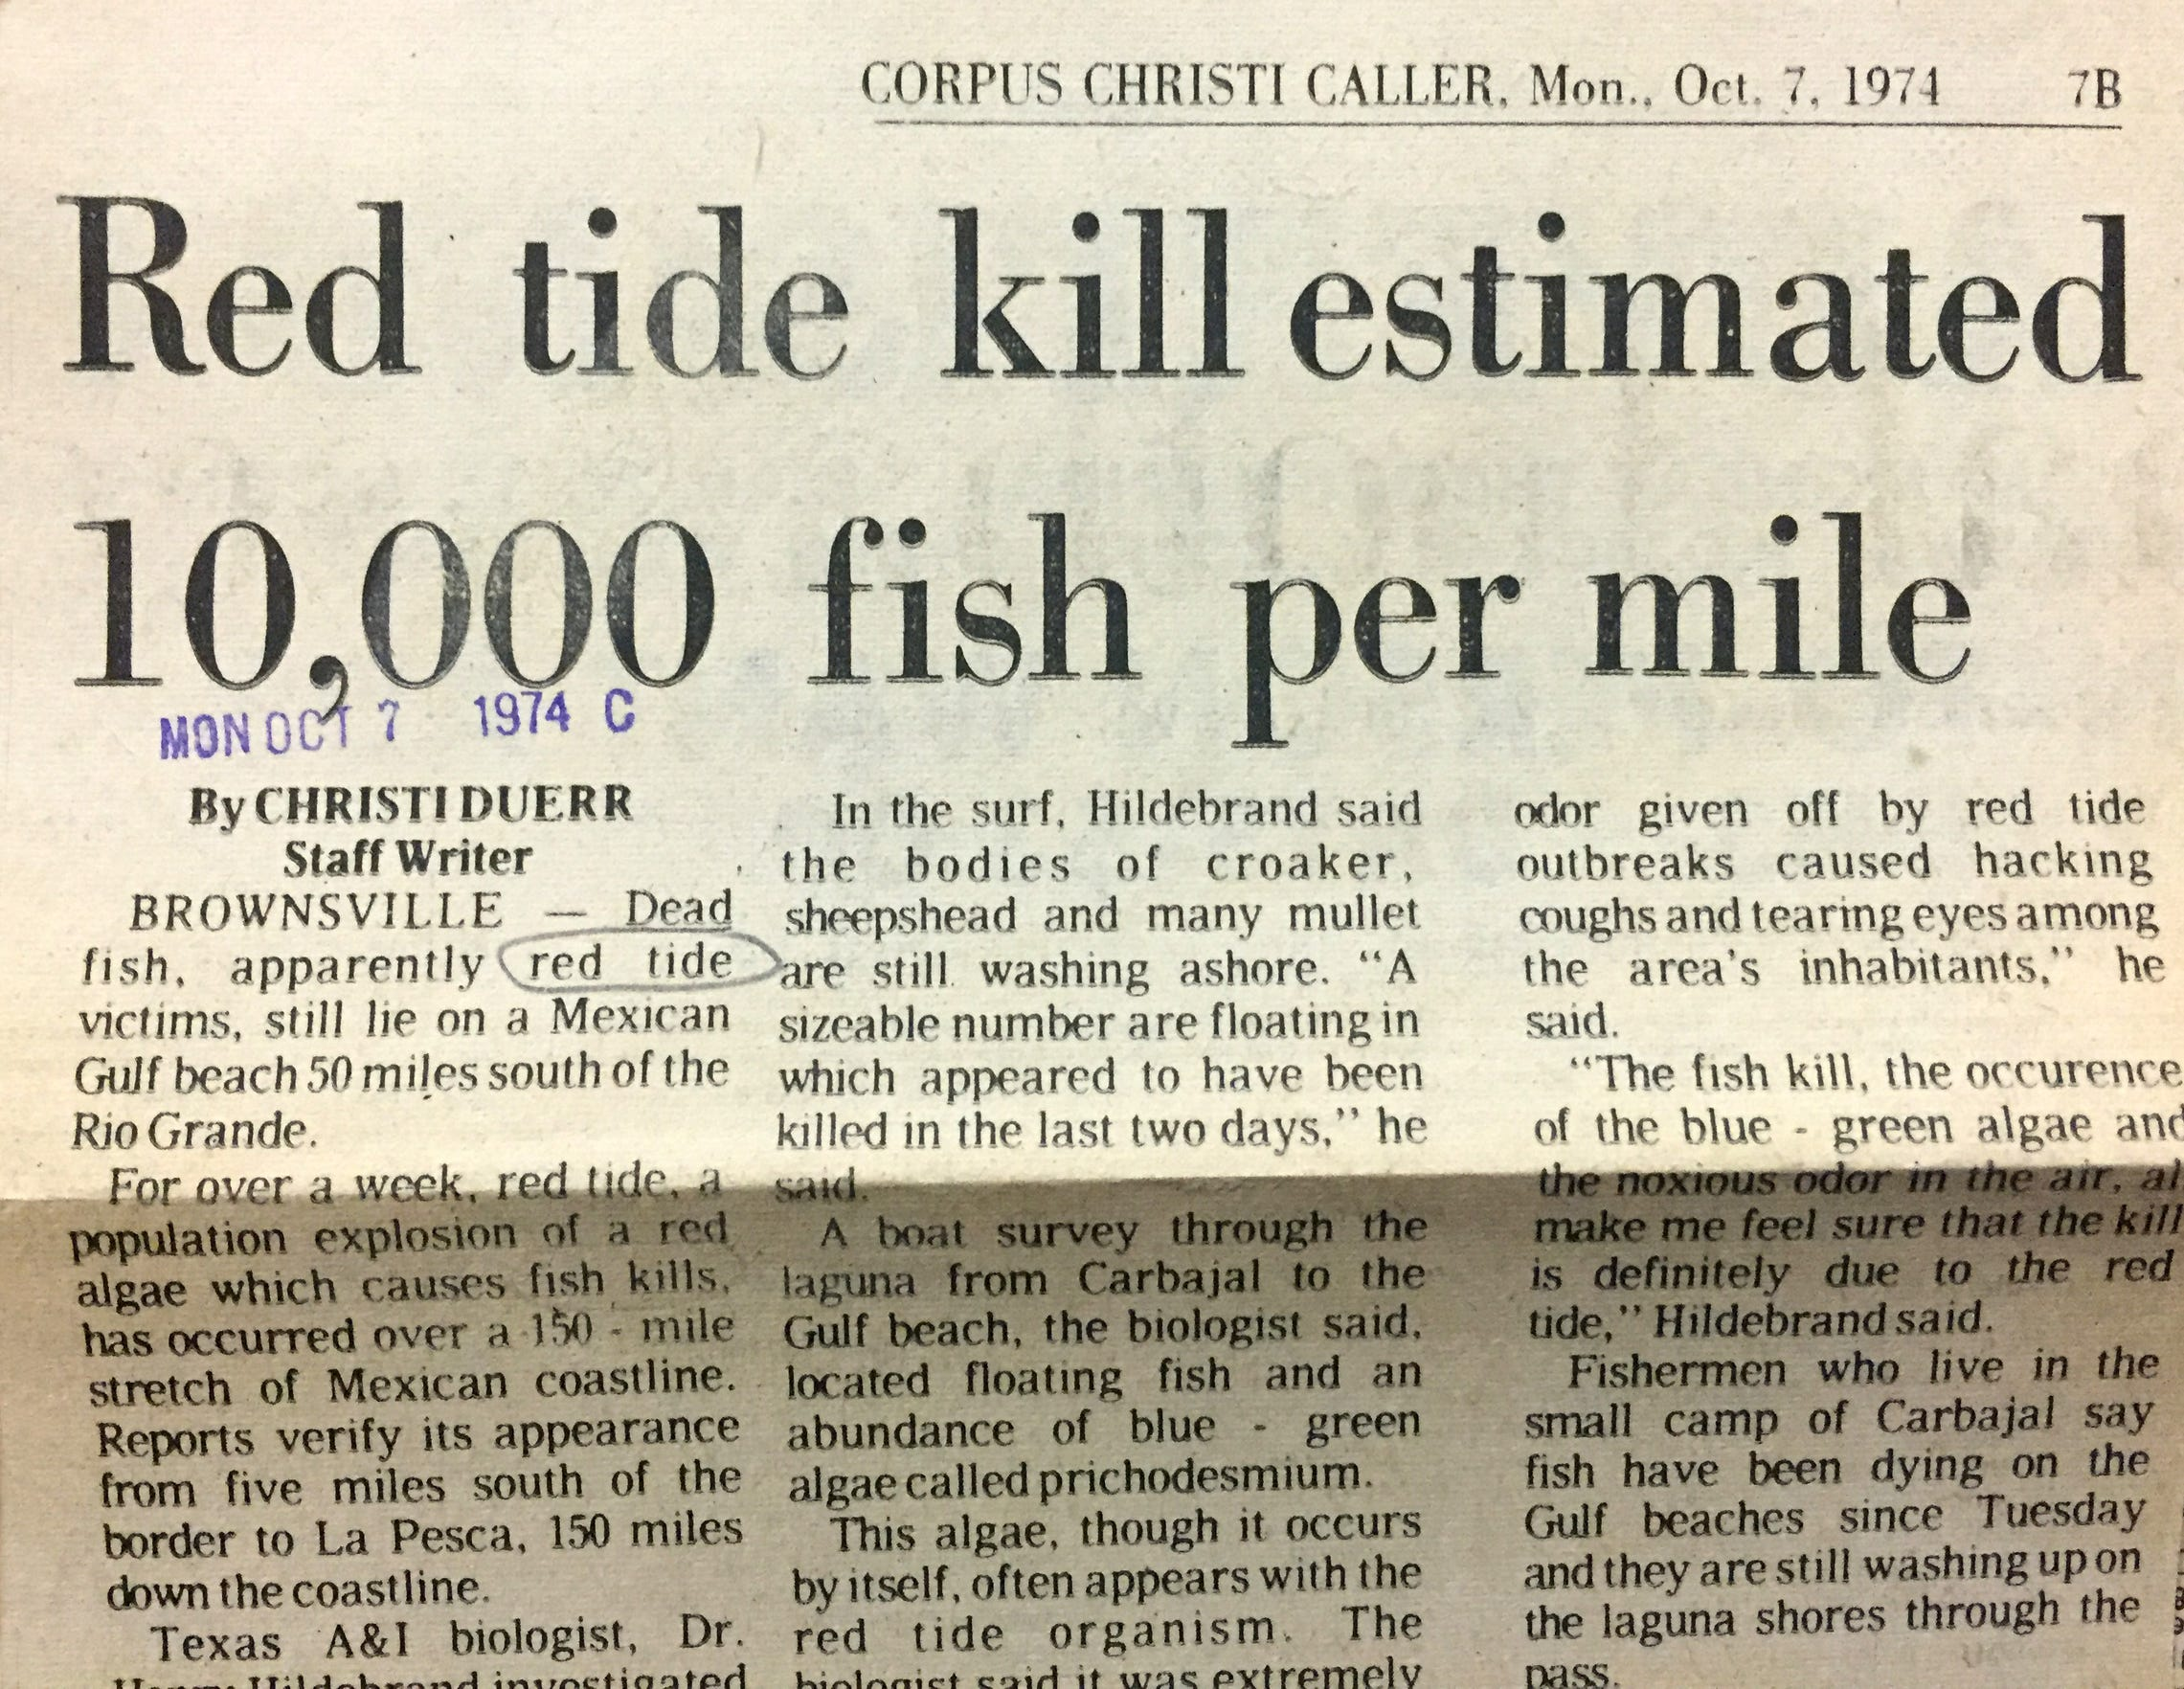 A Caller-Times story from 1974 reports a fish kill from a red tide bloom on the lower Texas coast.